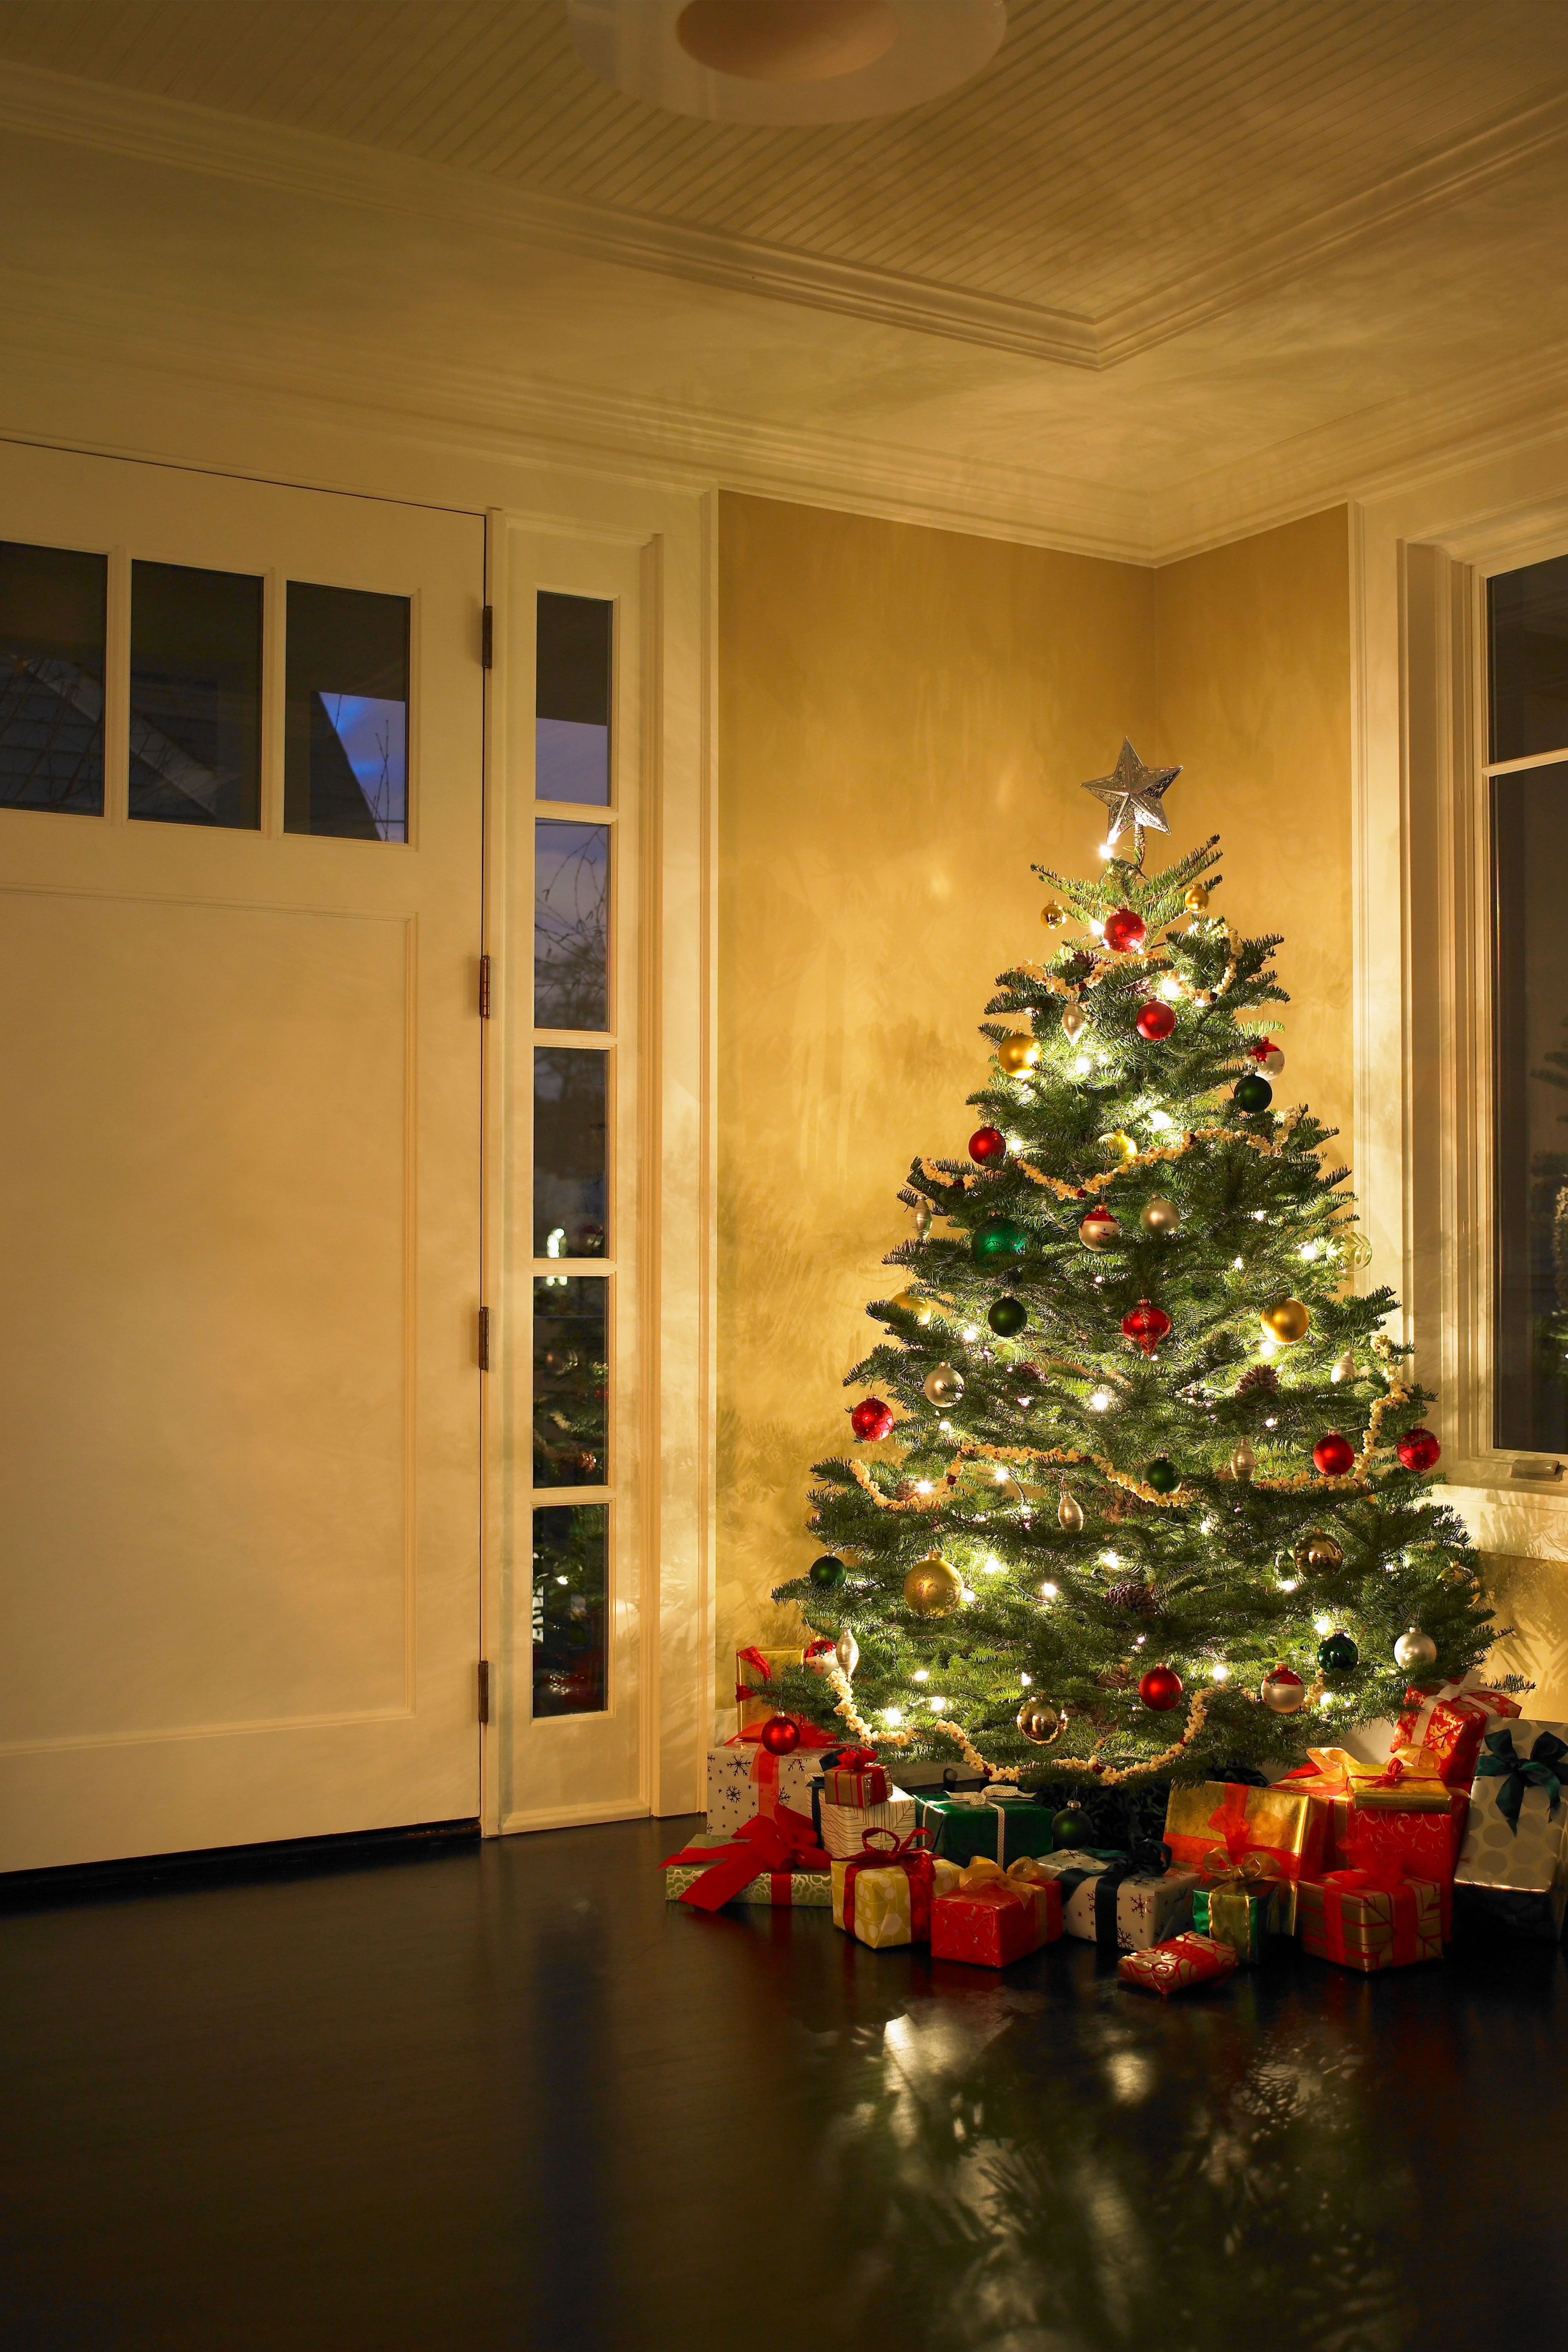 Christmas Tree Fails - Mistakes for Christmas Trees